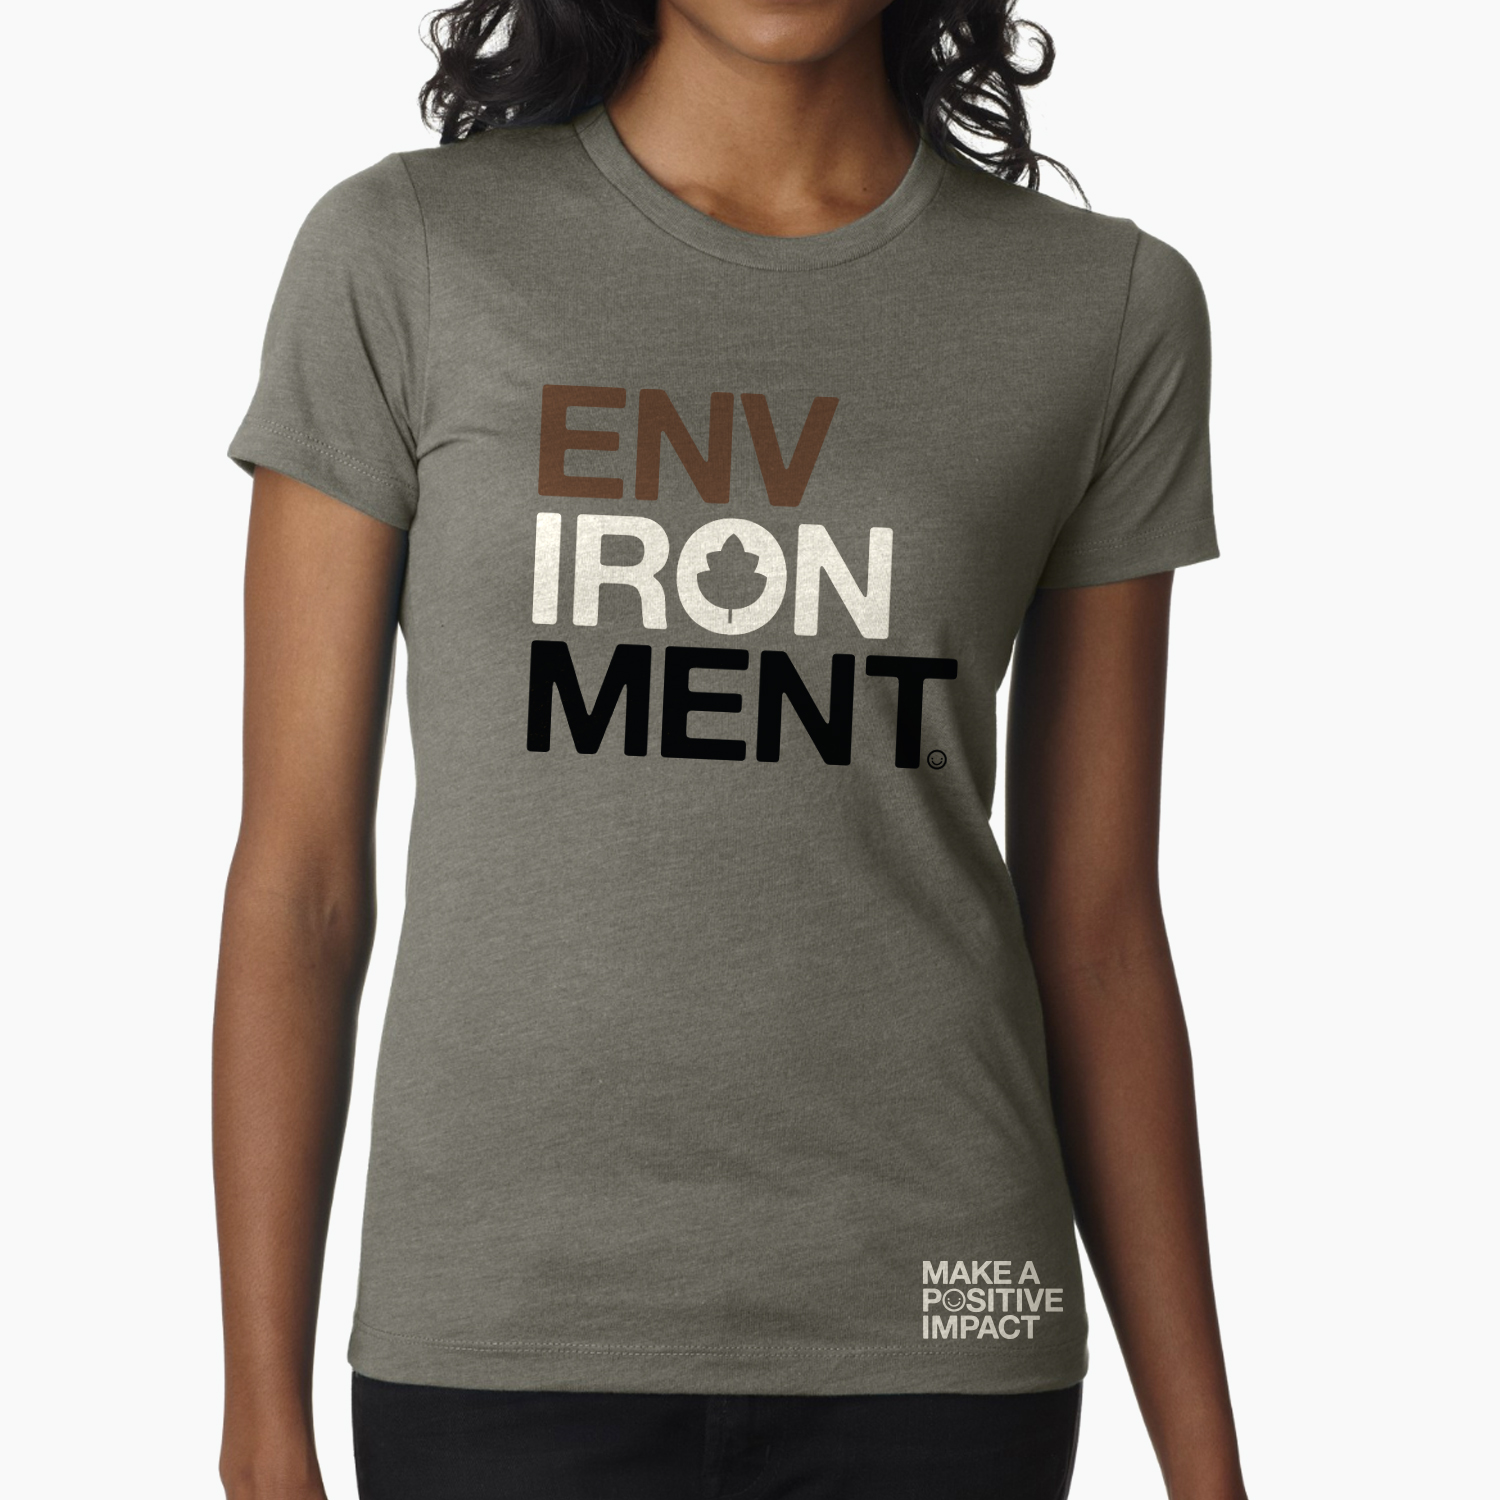 HappyBombs_Environment_ENVIRONMENT_Tshirt_Women.jpg